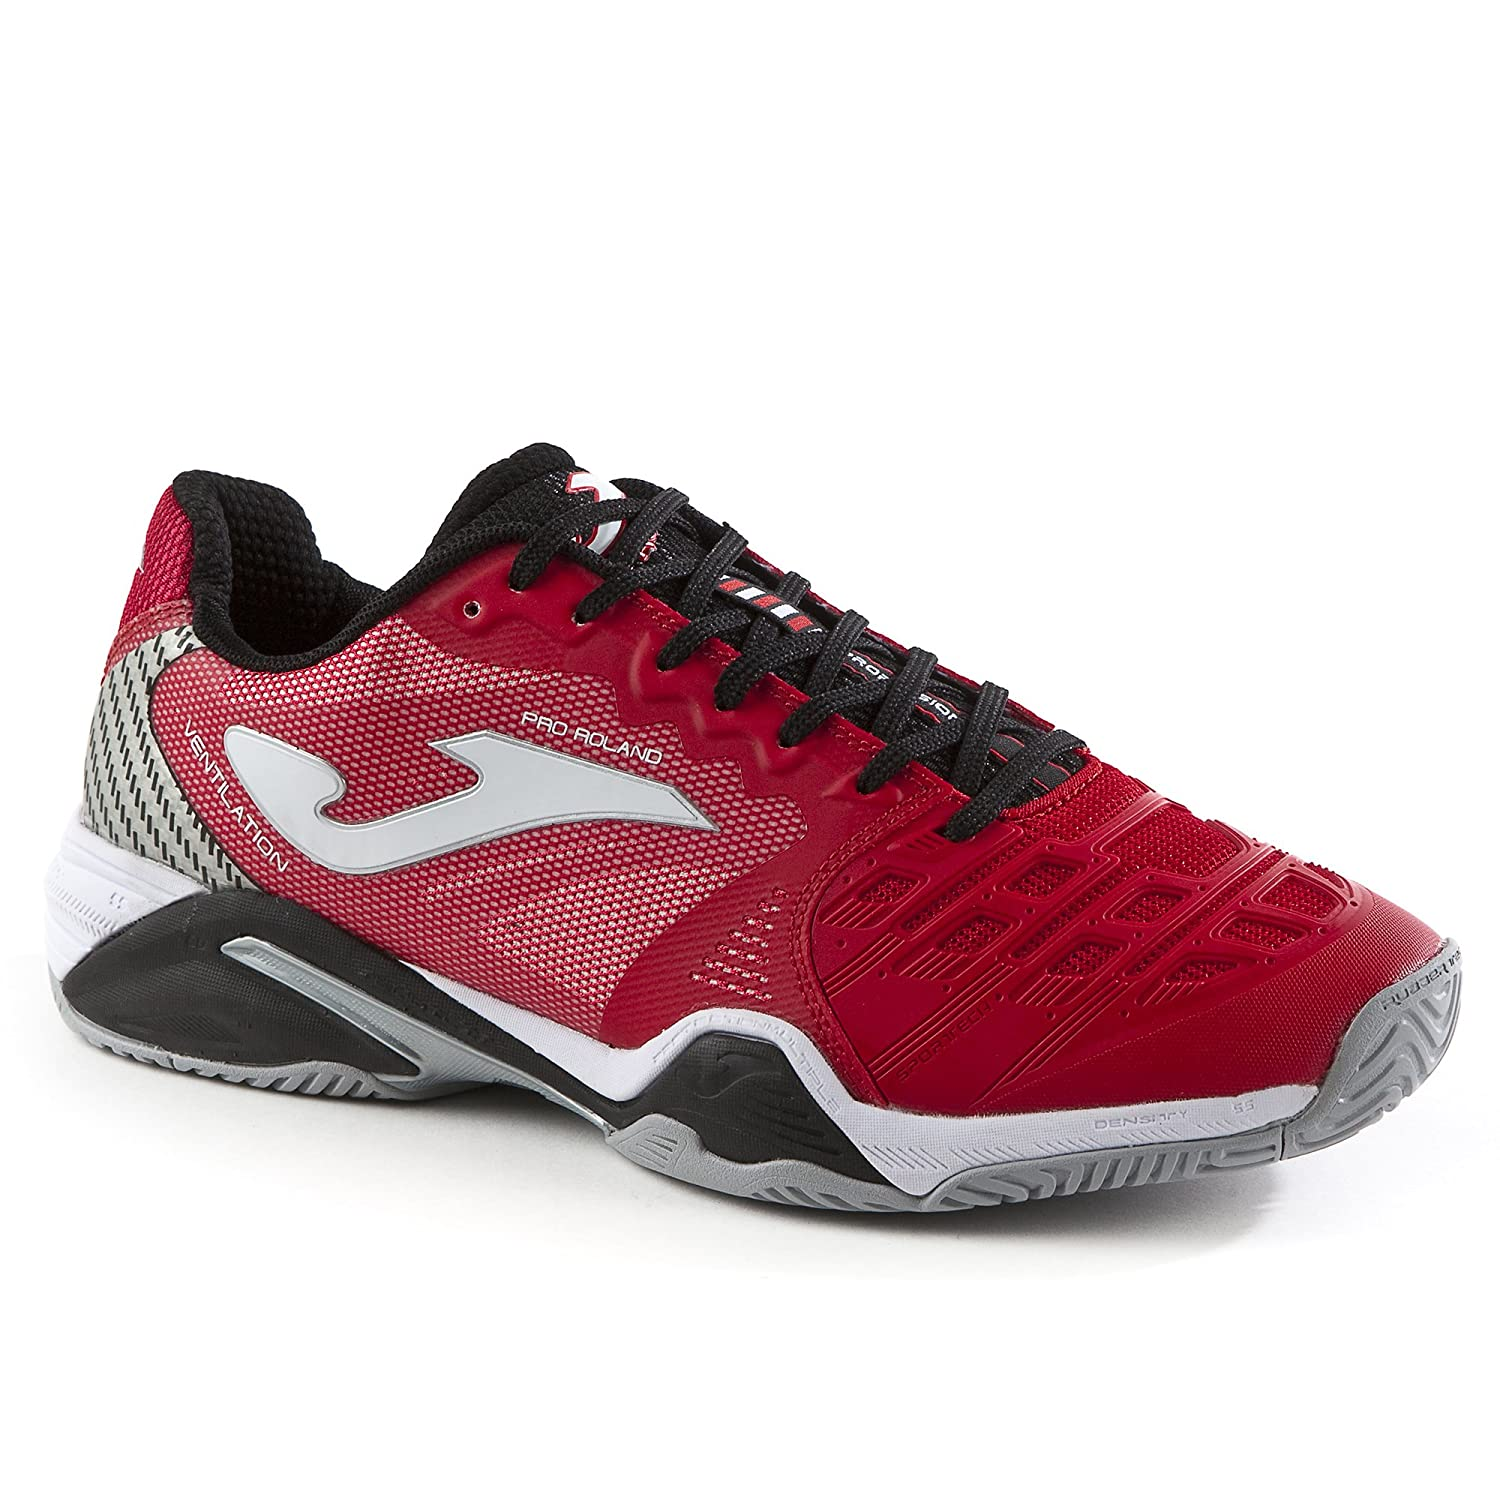 Joma - Zapatillas para correr Pro Roland All Court 706, color rojo, referente del productor T_ prolaw _ 706, rojo, 44.5 44.5|rojo rojo